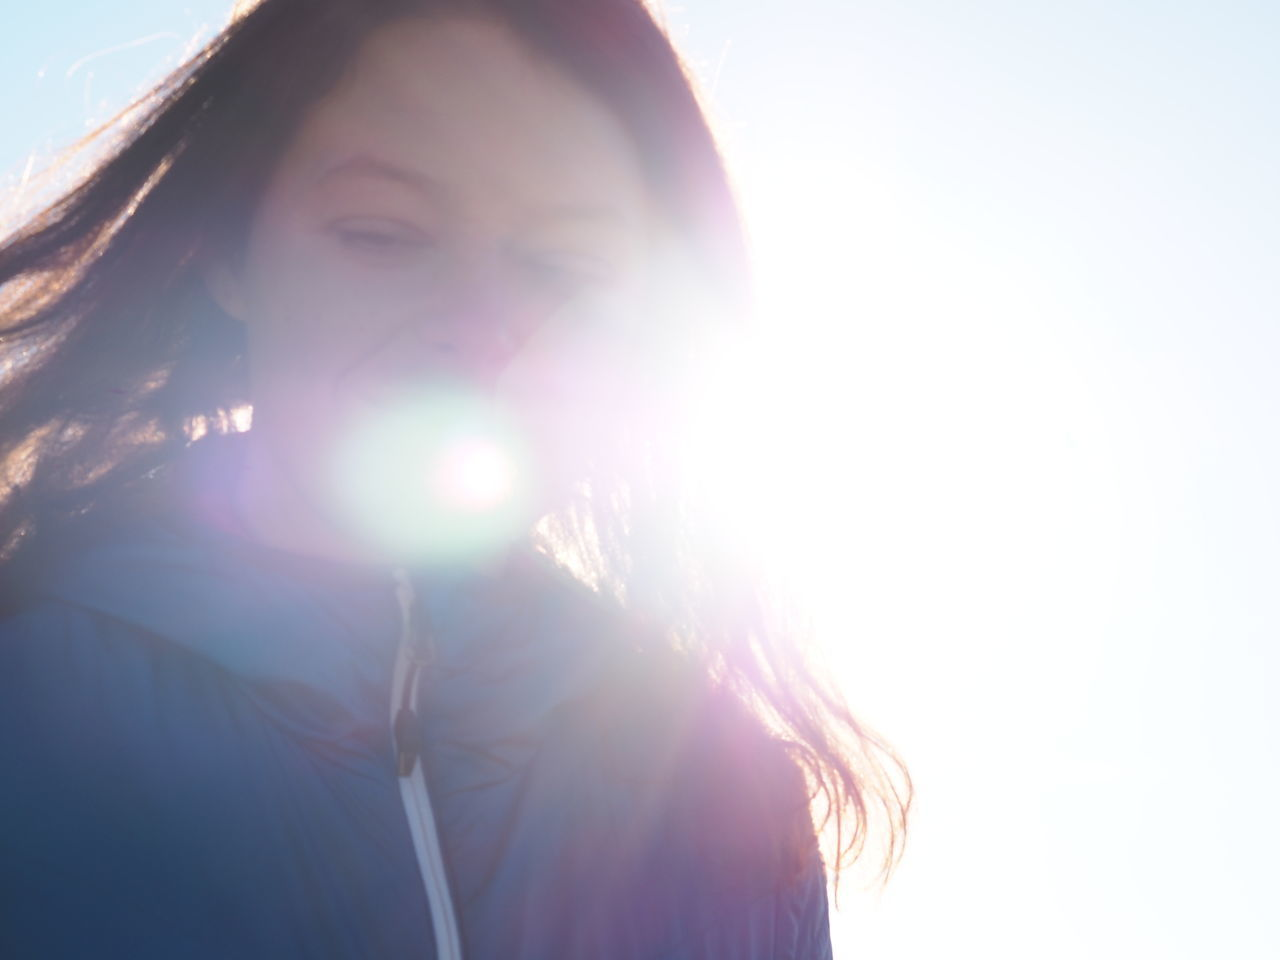 Back Lit Beautiful Woman Beauty Close-up Day Eyes Closed  Headshot Human Body Part Lens Flare One Person One Woman Only One Young Woman Only Only Women Outdoors People Real People Sky Sunbeam Sunlight Woman Woman Portrait Young Adult Young Women